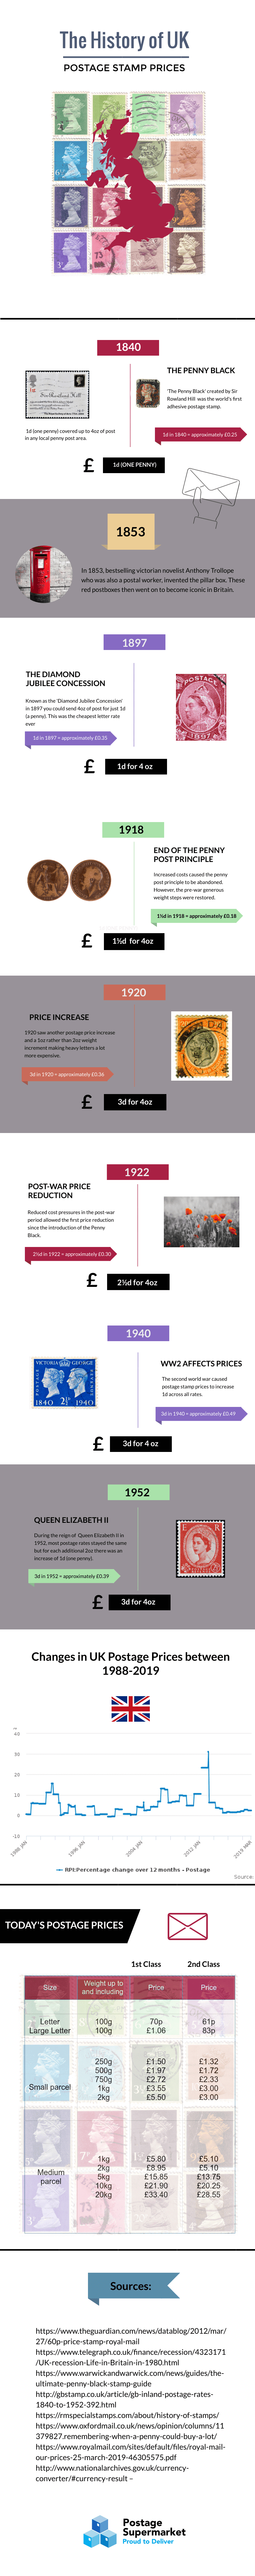 The History of UK Postage Stamp Prices